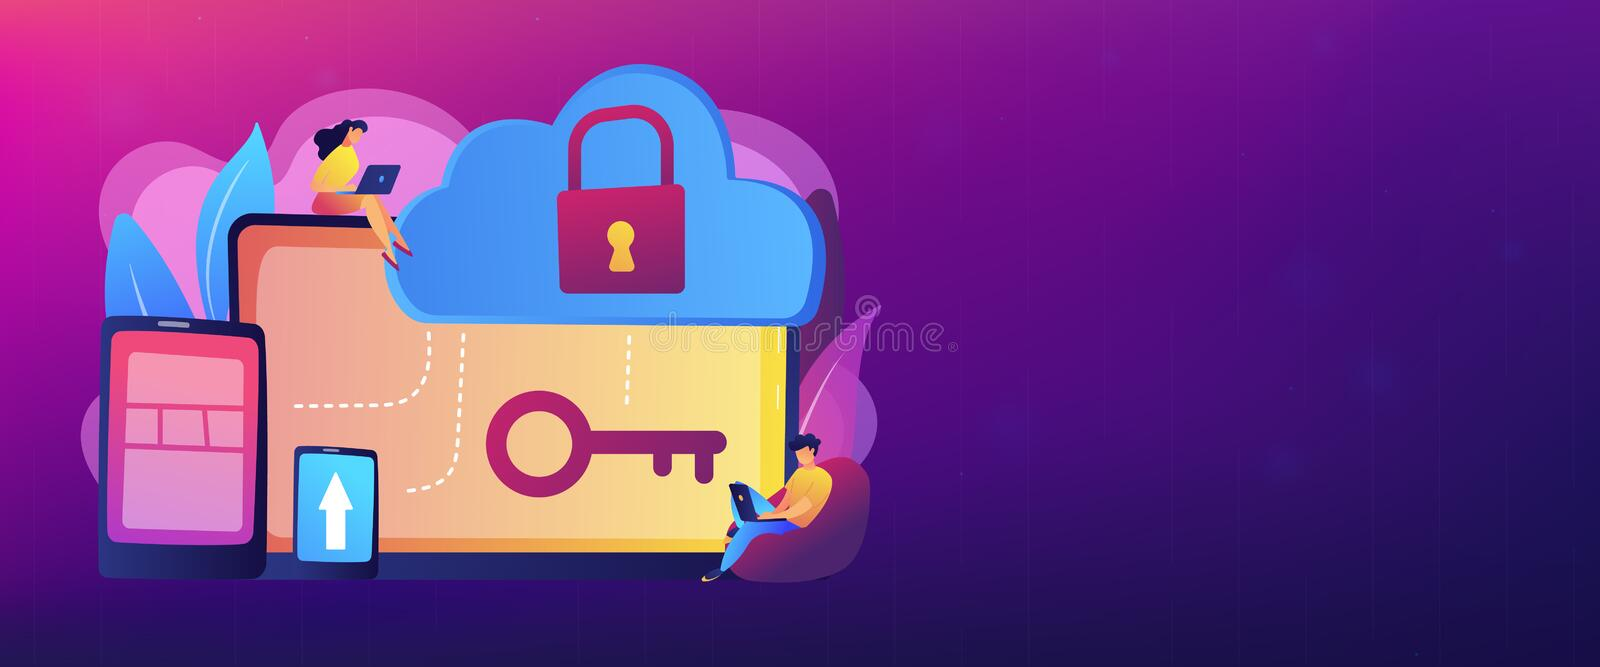 Cloud computing security concept banner header. royalty free illustration